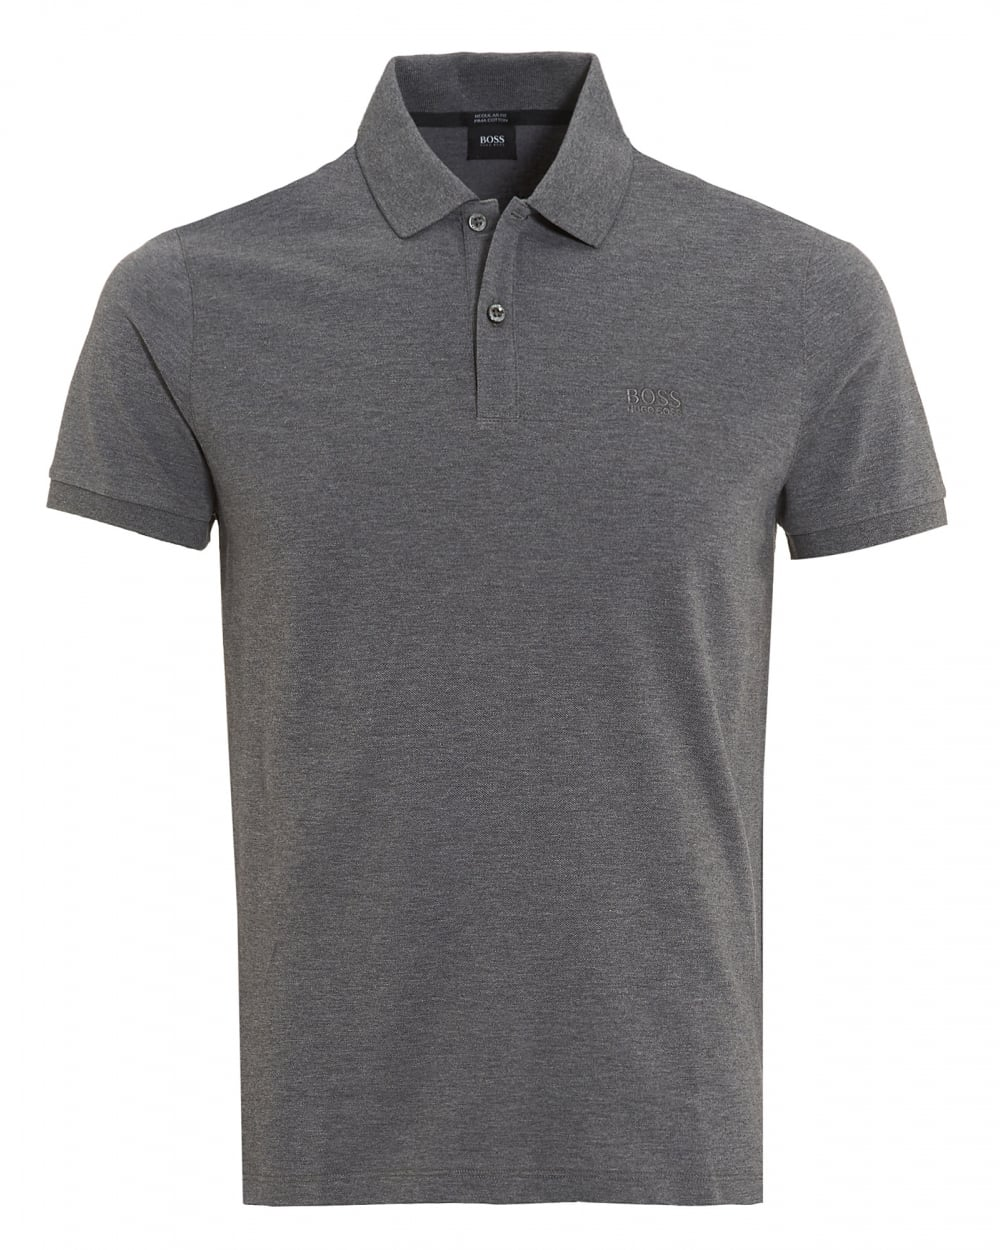 3fa844df89ba7 ... coupon code for mens pallas polo shirt regular fit plain light grey  logo polo 87214 fe6d7